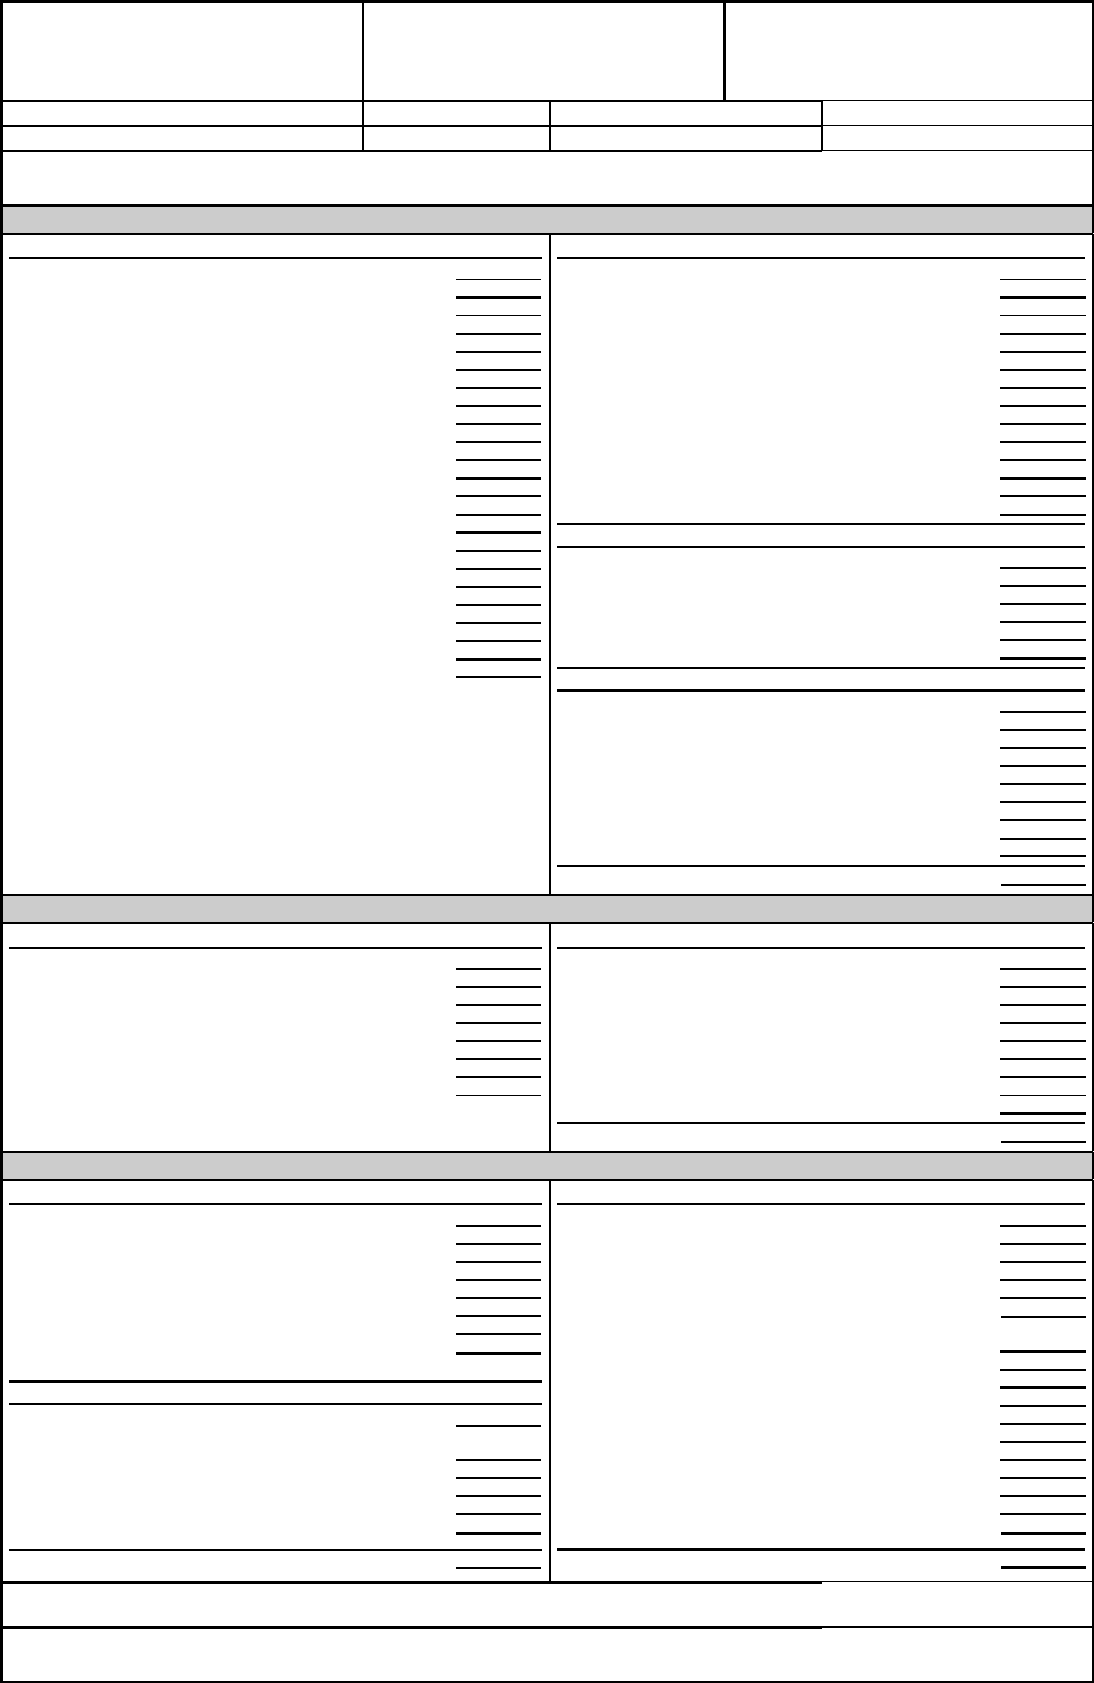 good faith blank estimate template pdf printable good faith blank estimate template pdf printable